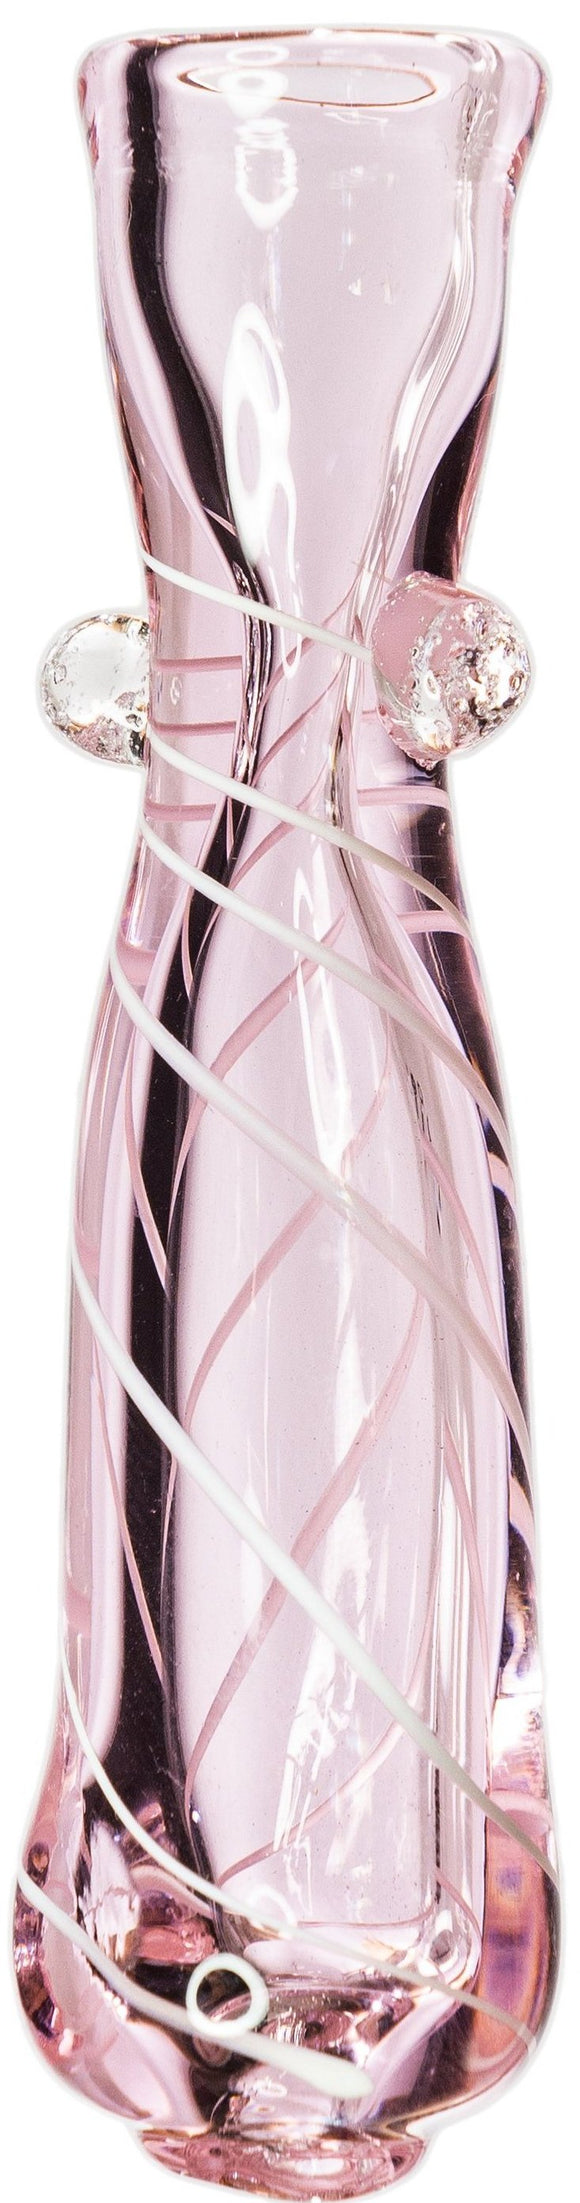 Pink Bow Glass Chillum - Bat Kountry- shipping in stock items during COVID-19